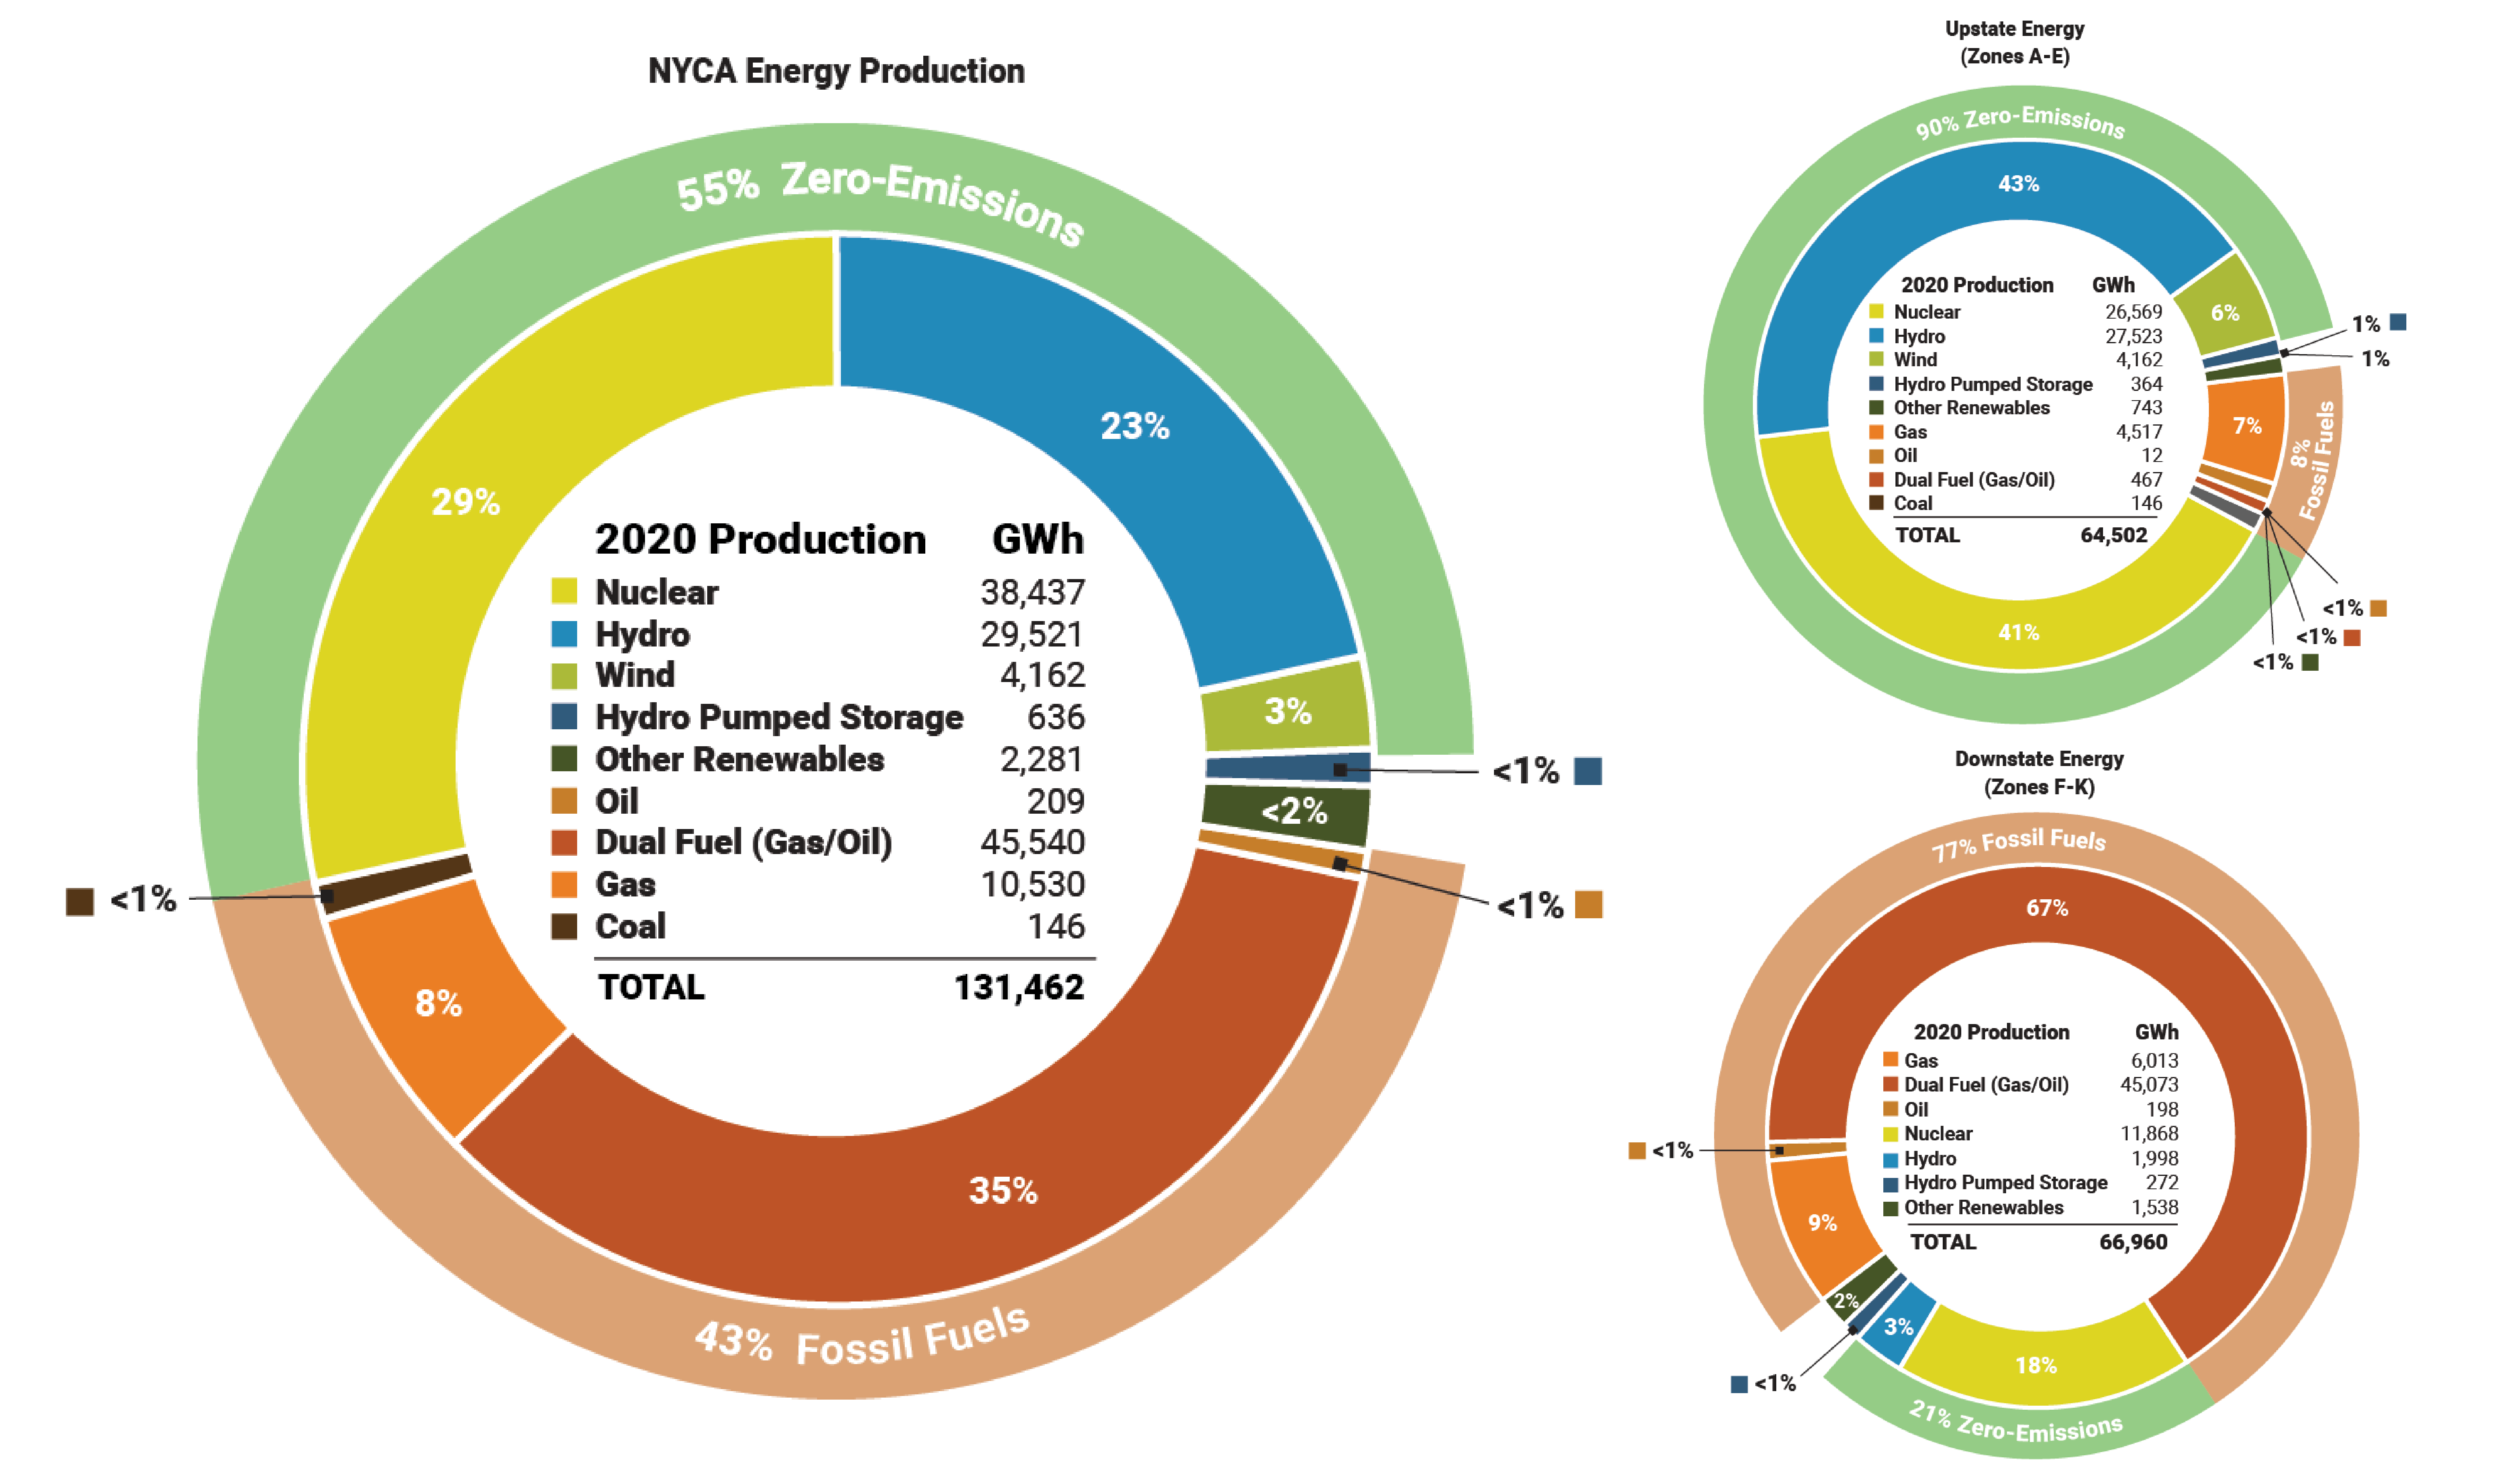 Figure 13: Energy Production by Fuel Source - Statewide, Upstate, & Downstate New York: 2020